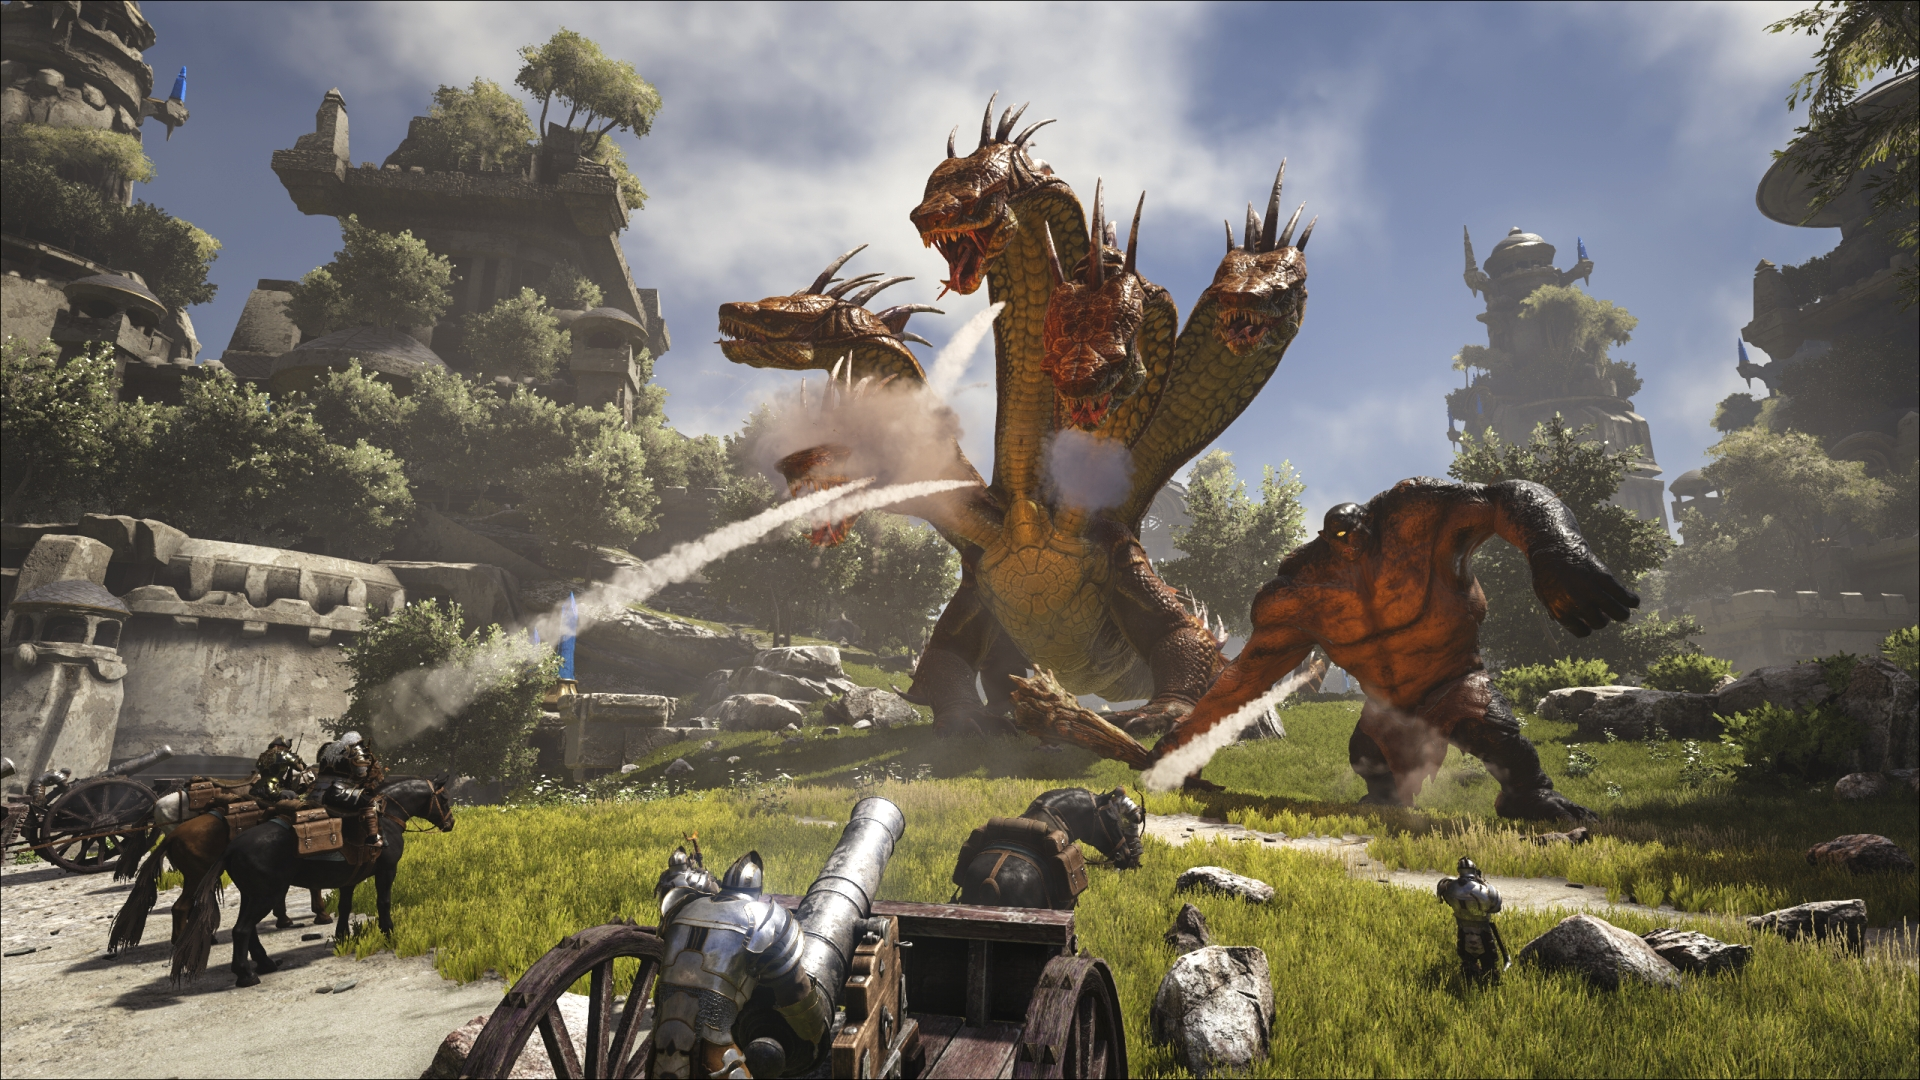 ATLAS Devs Explain Improved Tech for their Huge MMO, Say This Could